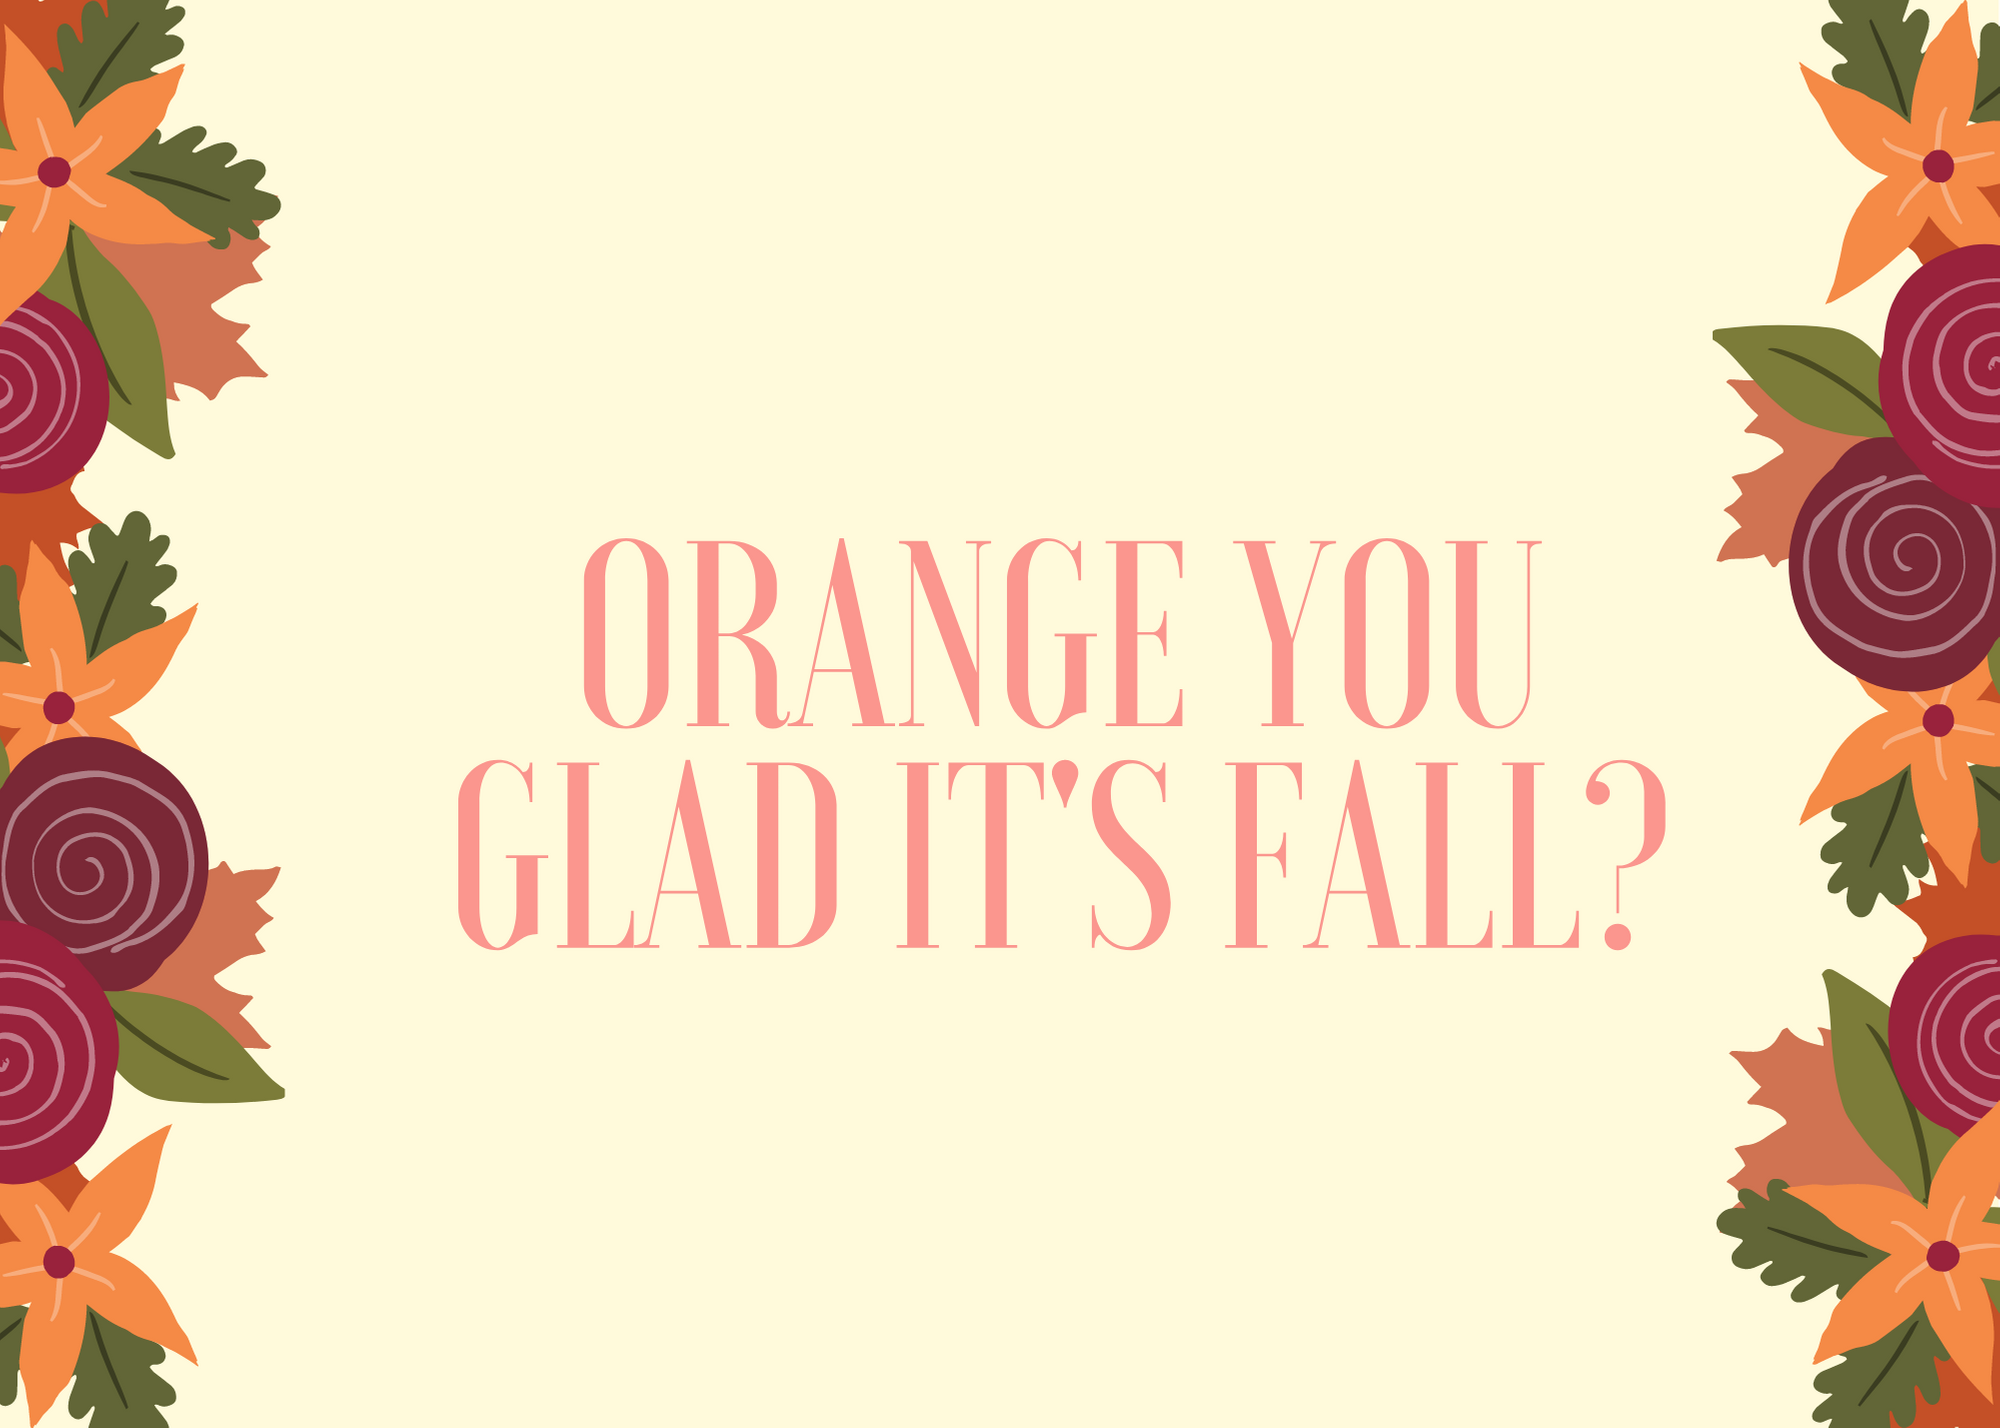 Funny Fall Instagram Caption About Orange